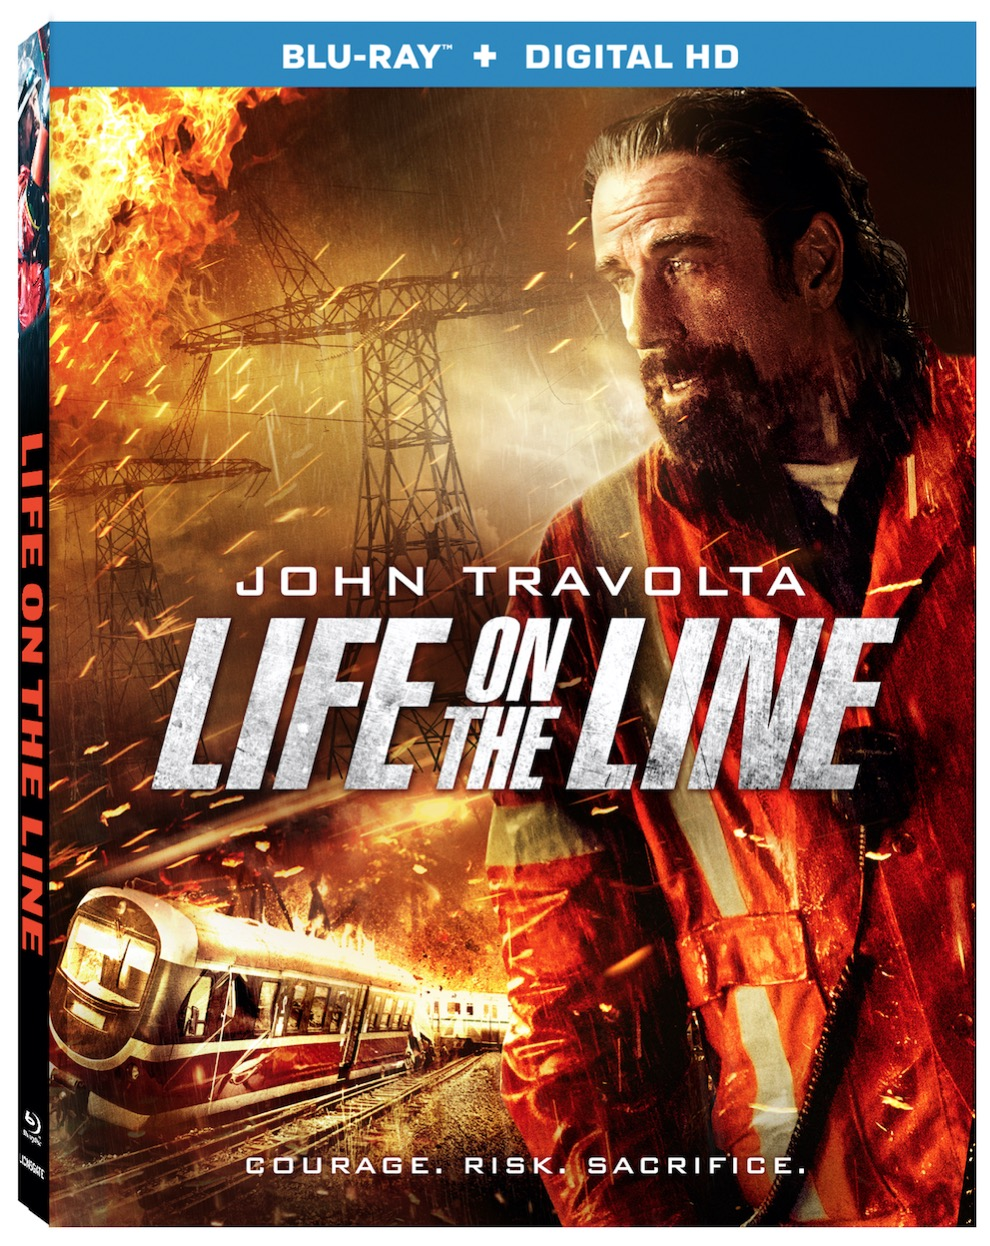 LIFE ON THE LINE Blu-ray